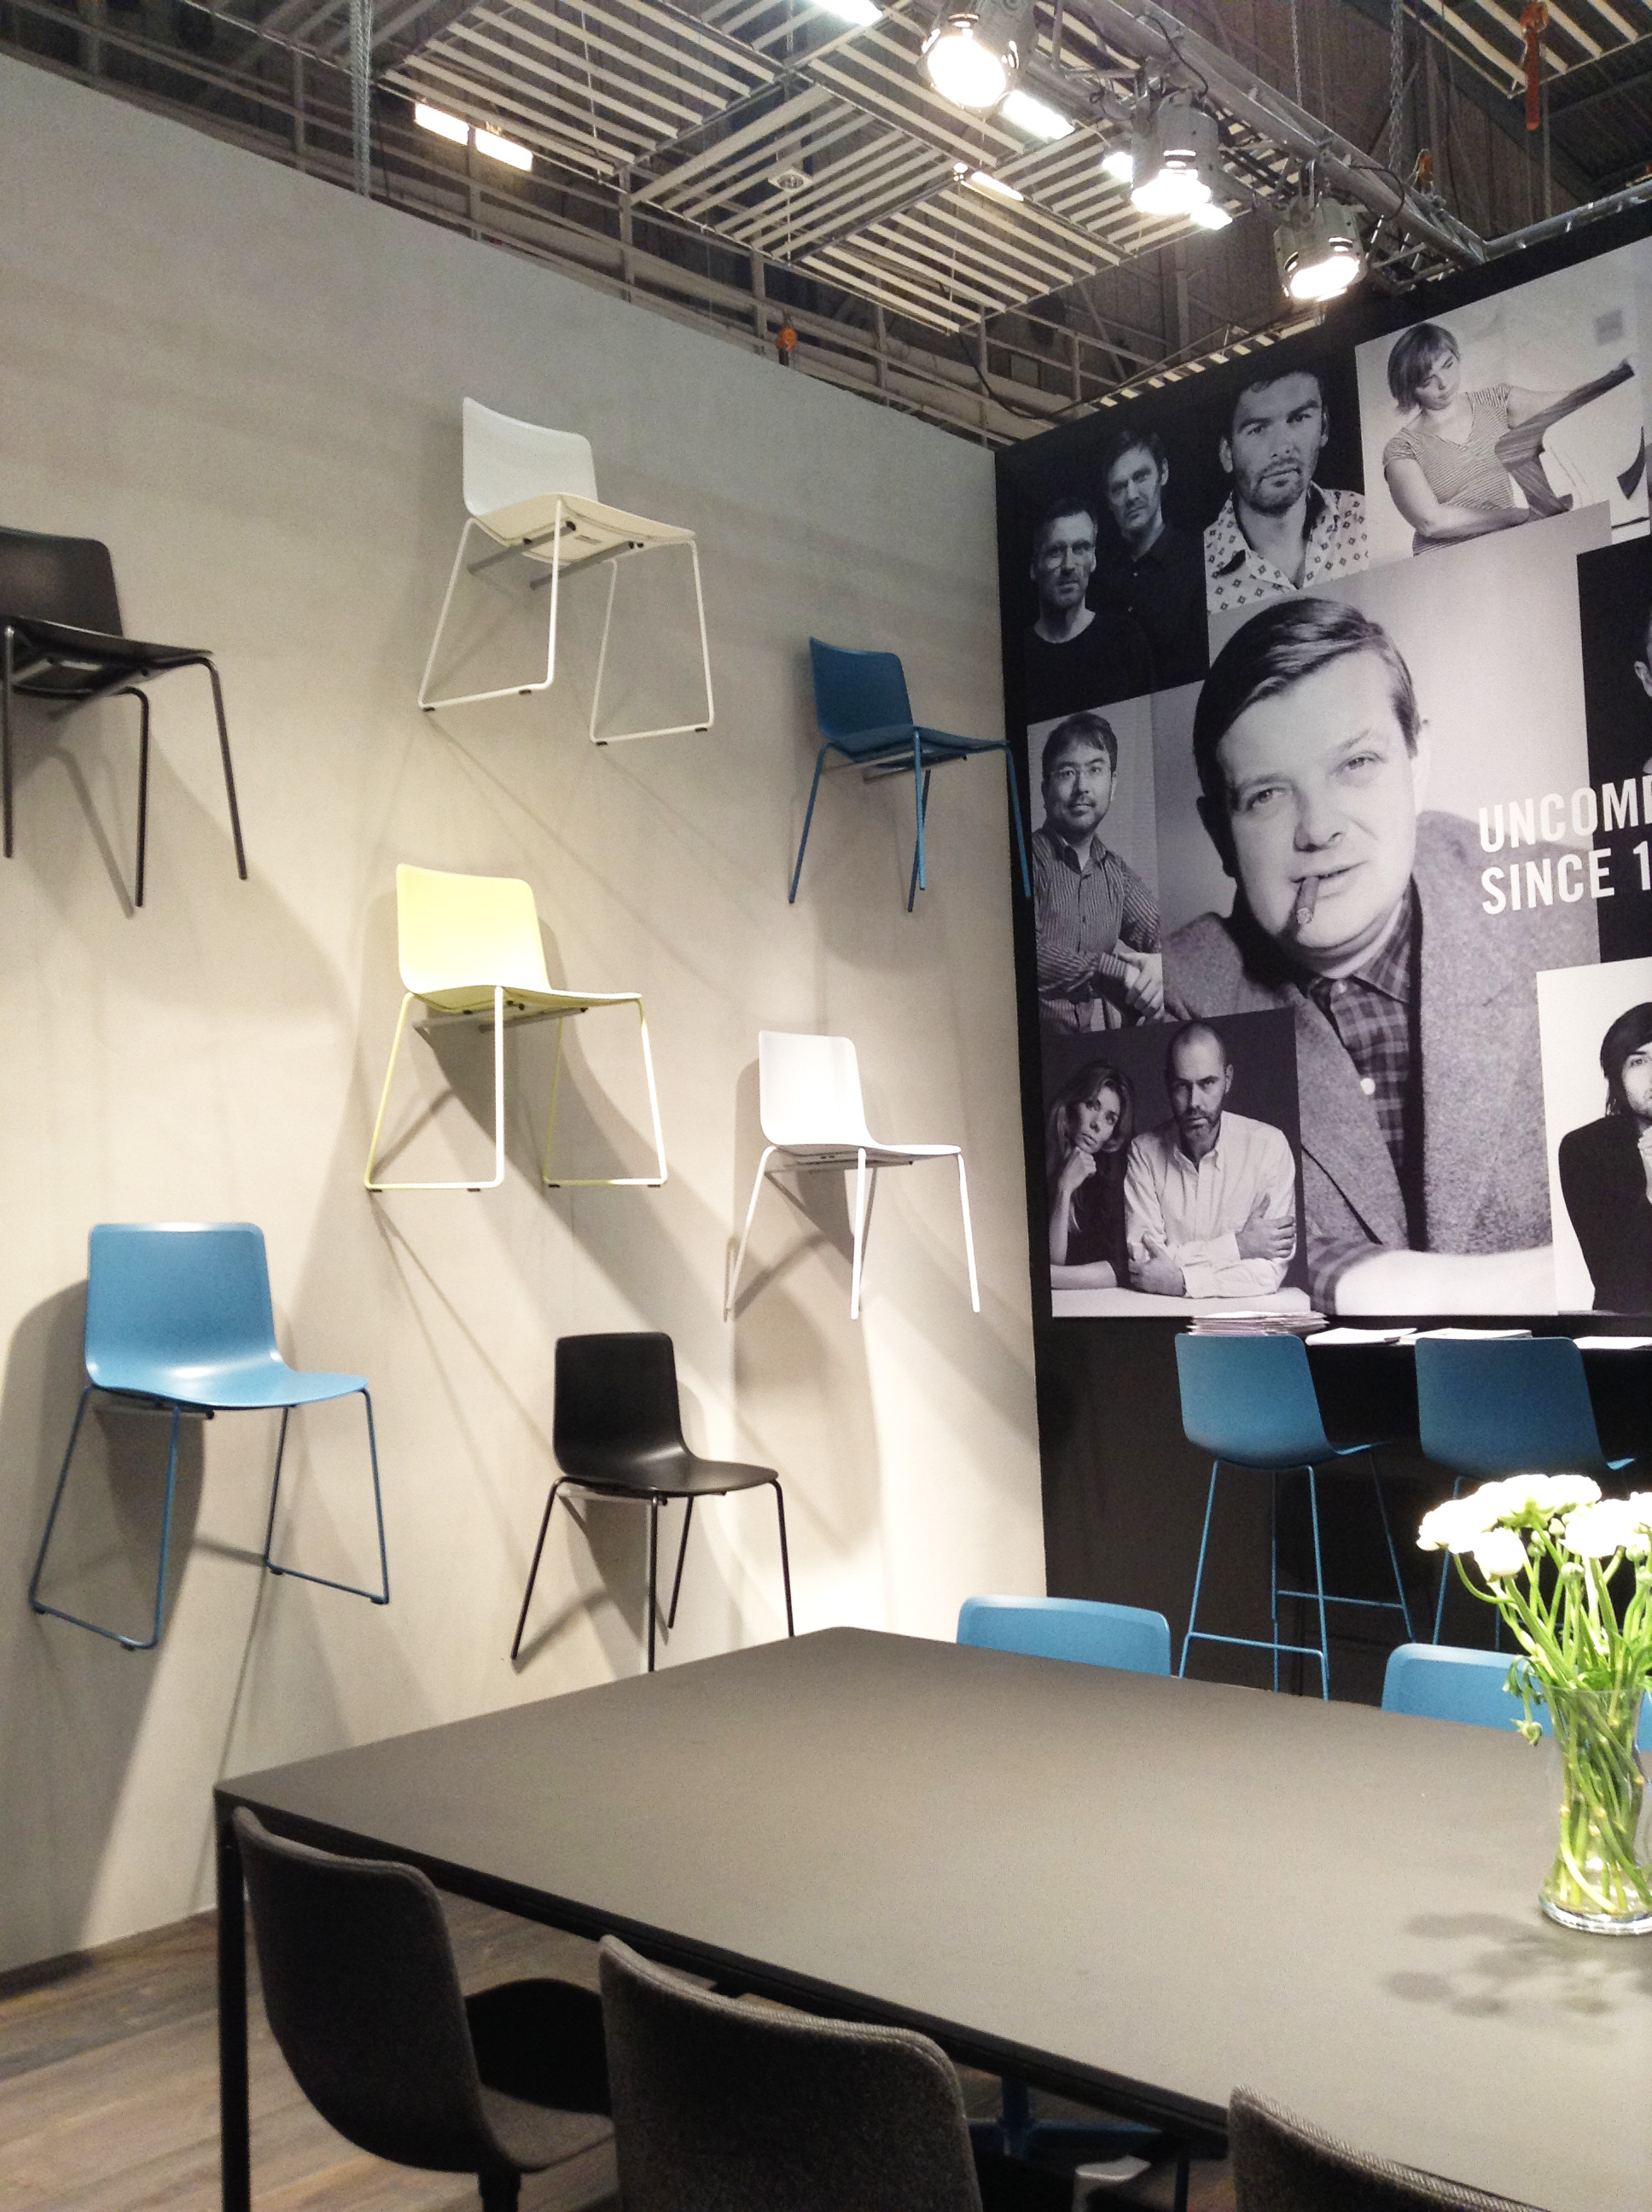 Stockholm Furniture Fair: Chairs